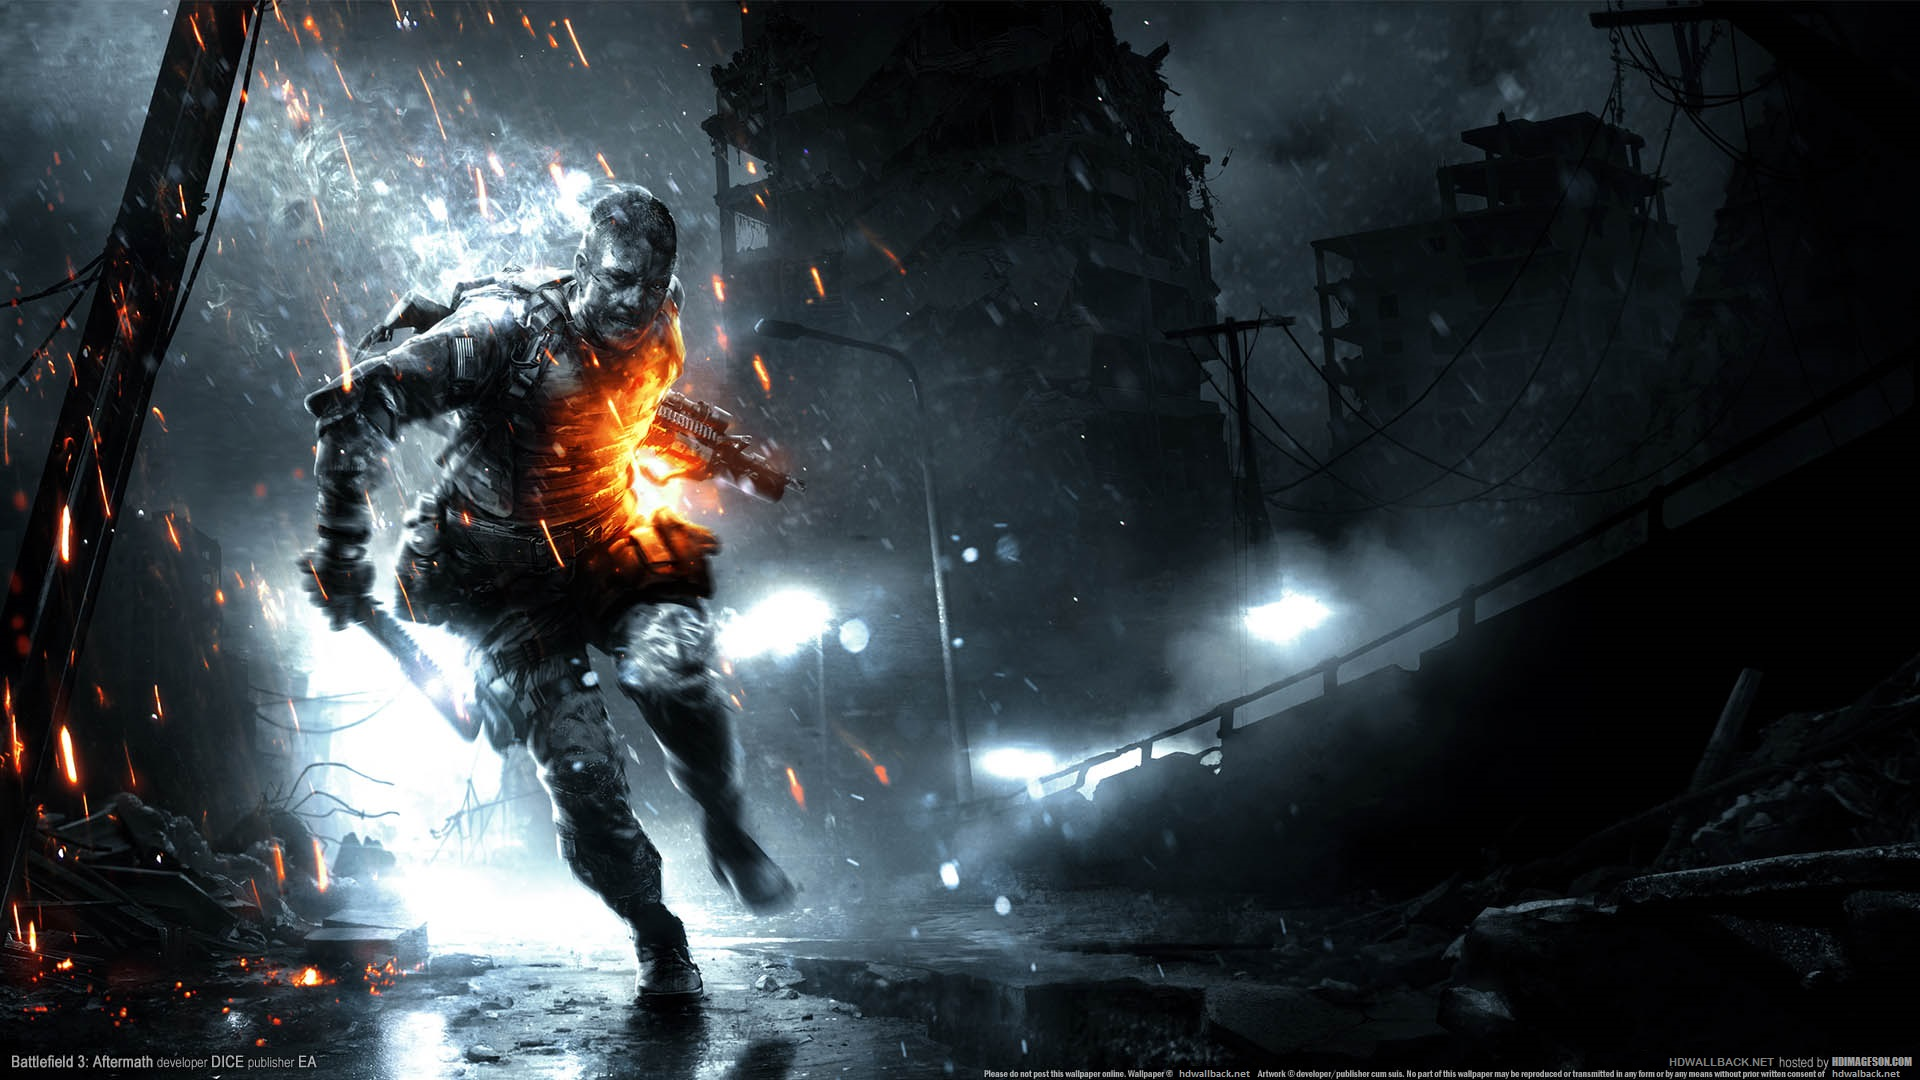 wallpaper battlefield 3 aftermath 1920x1080 1920x1080, 4k, 4k images